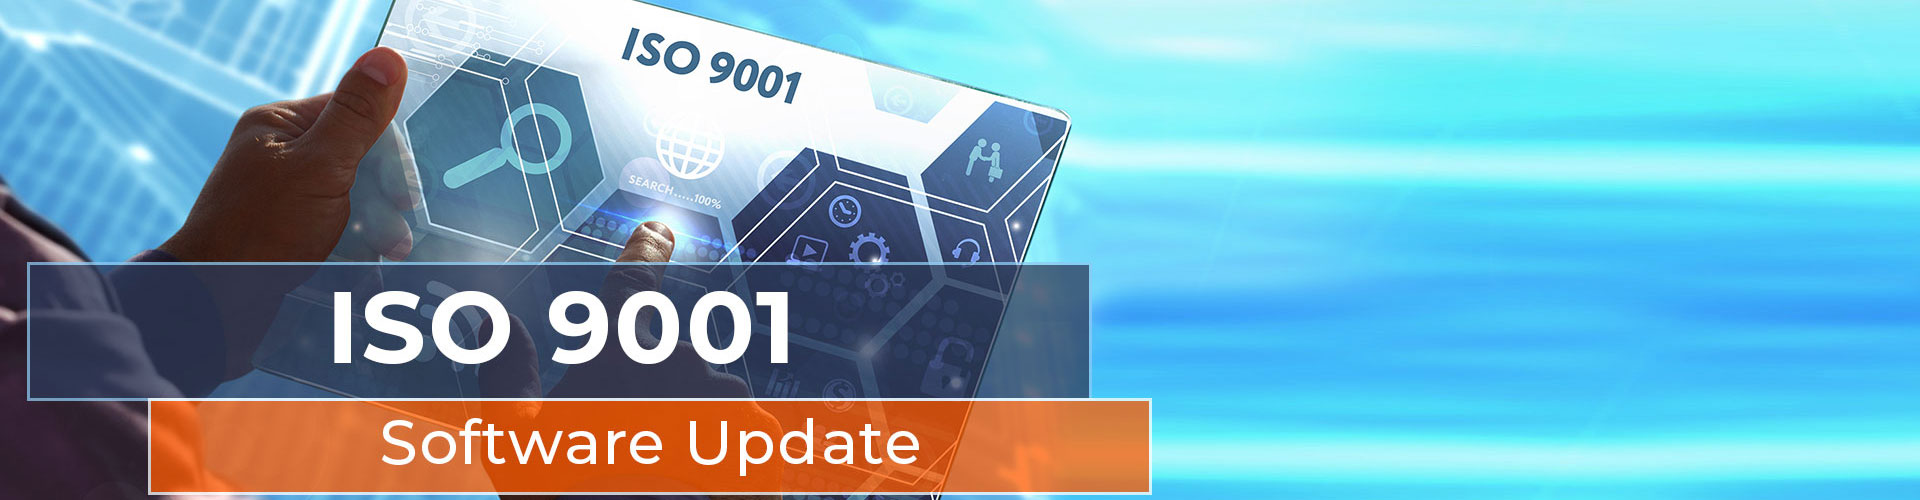 ISO-9001-Software-Update